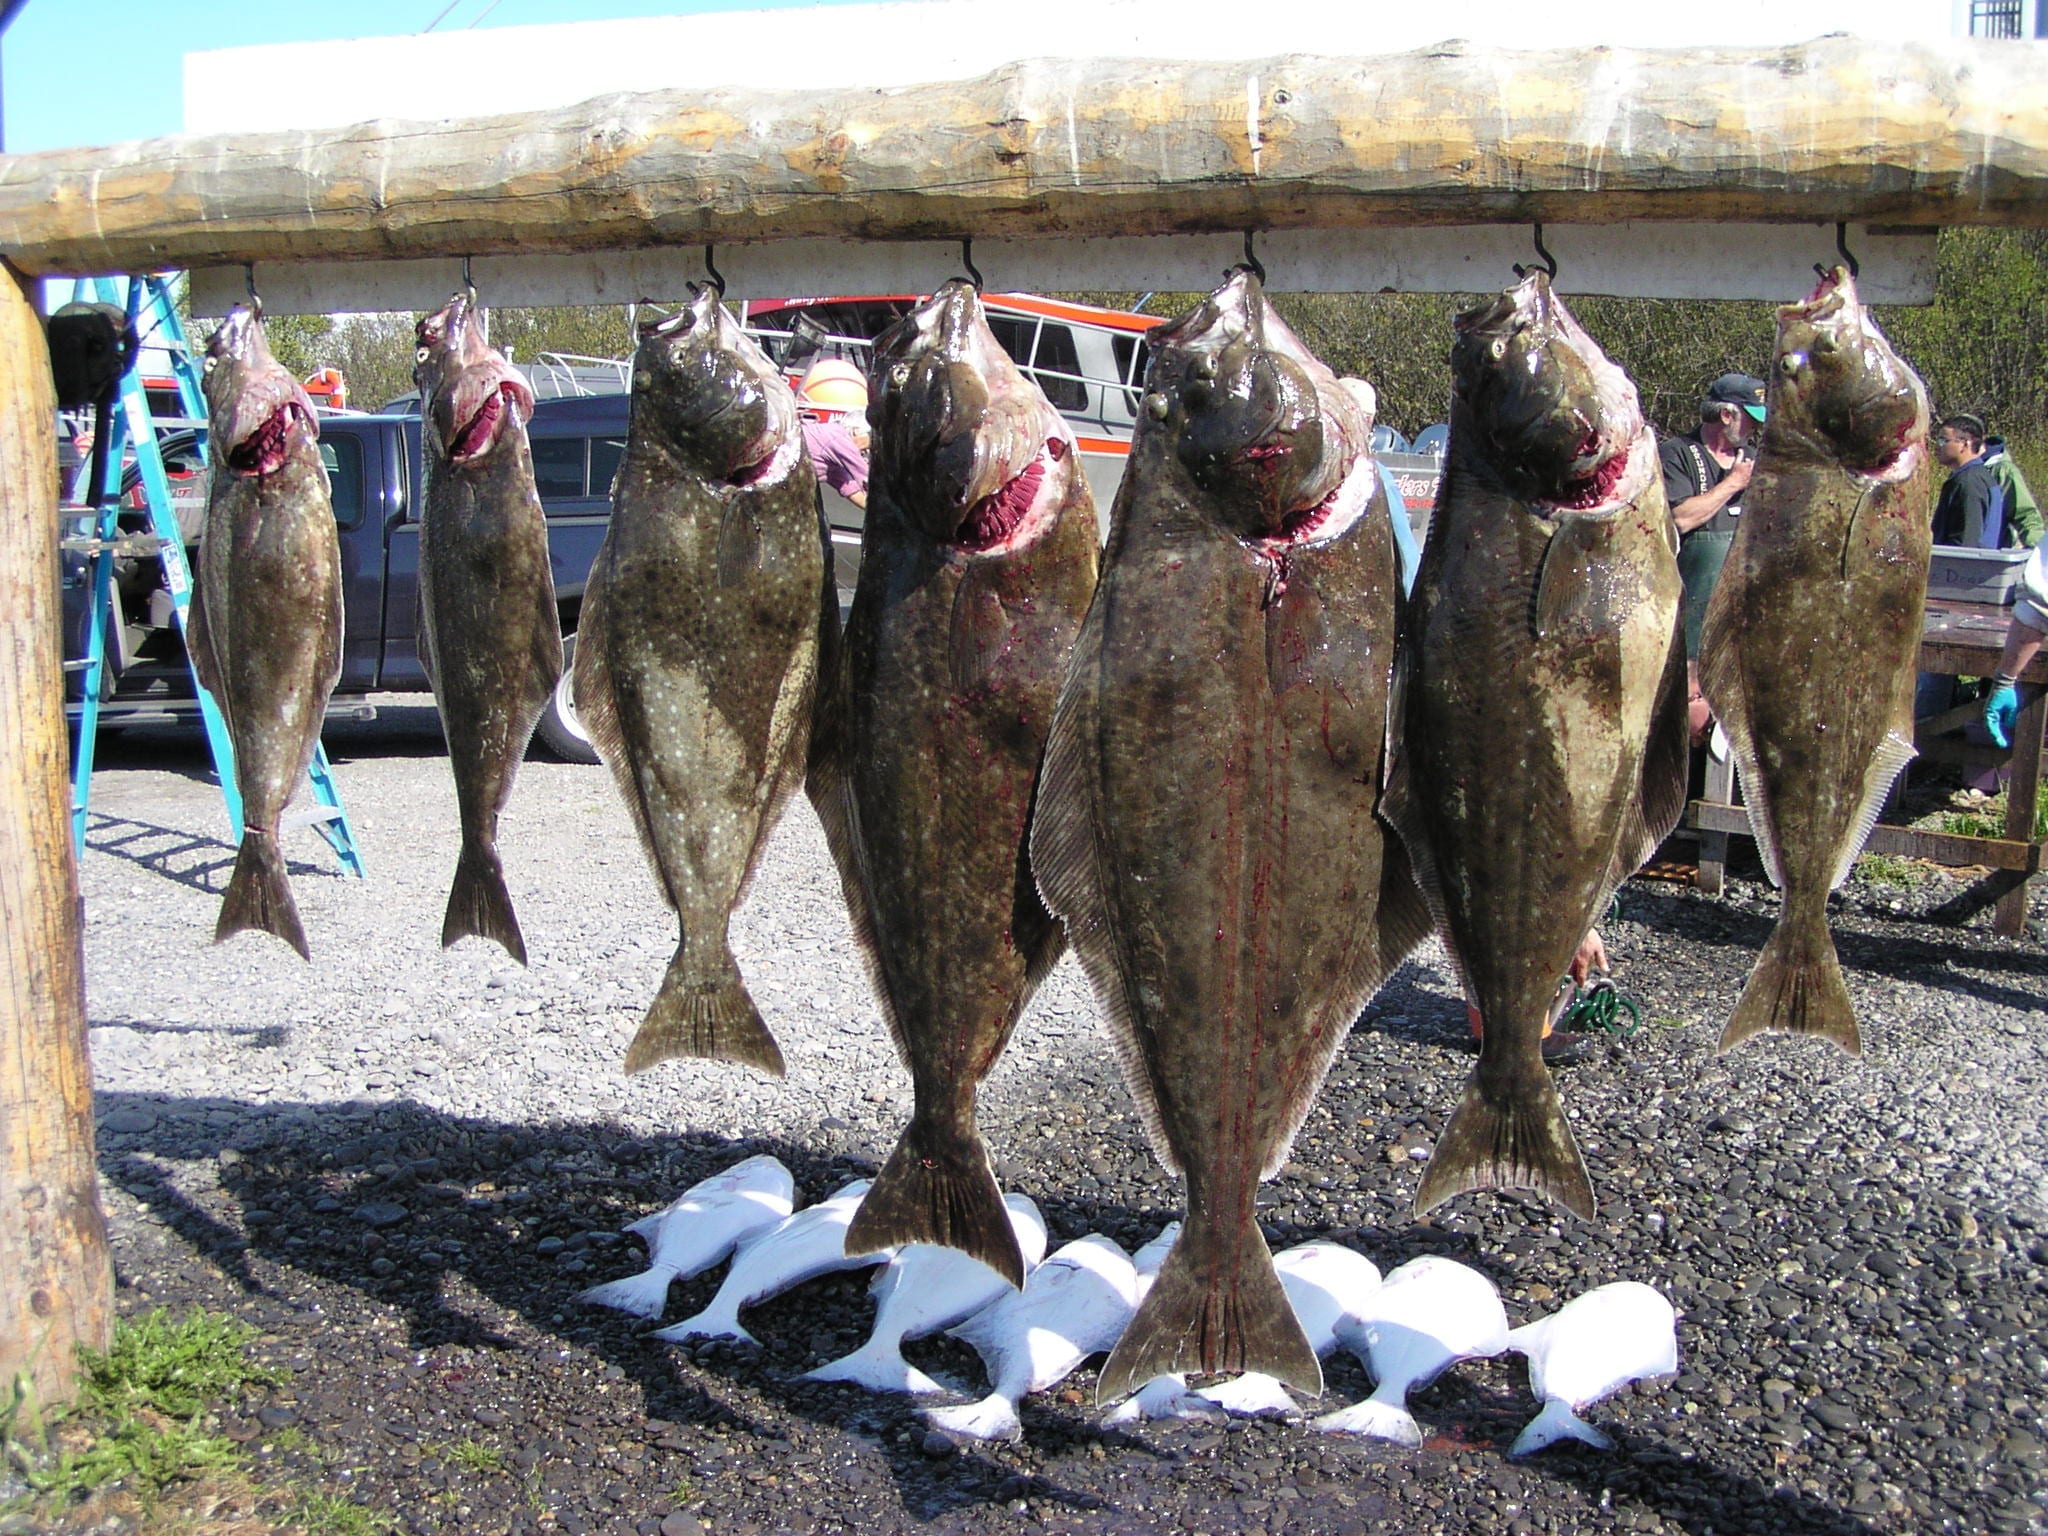 several fish hanging on a line